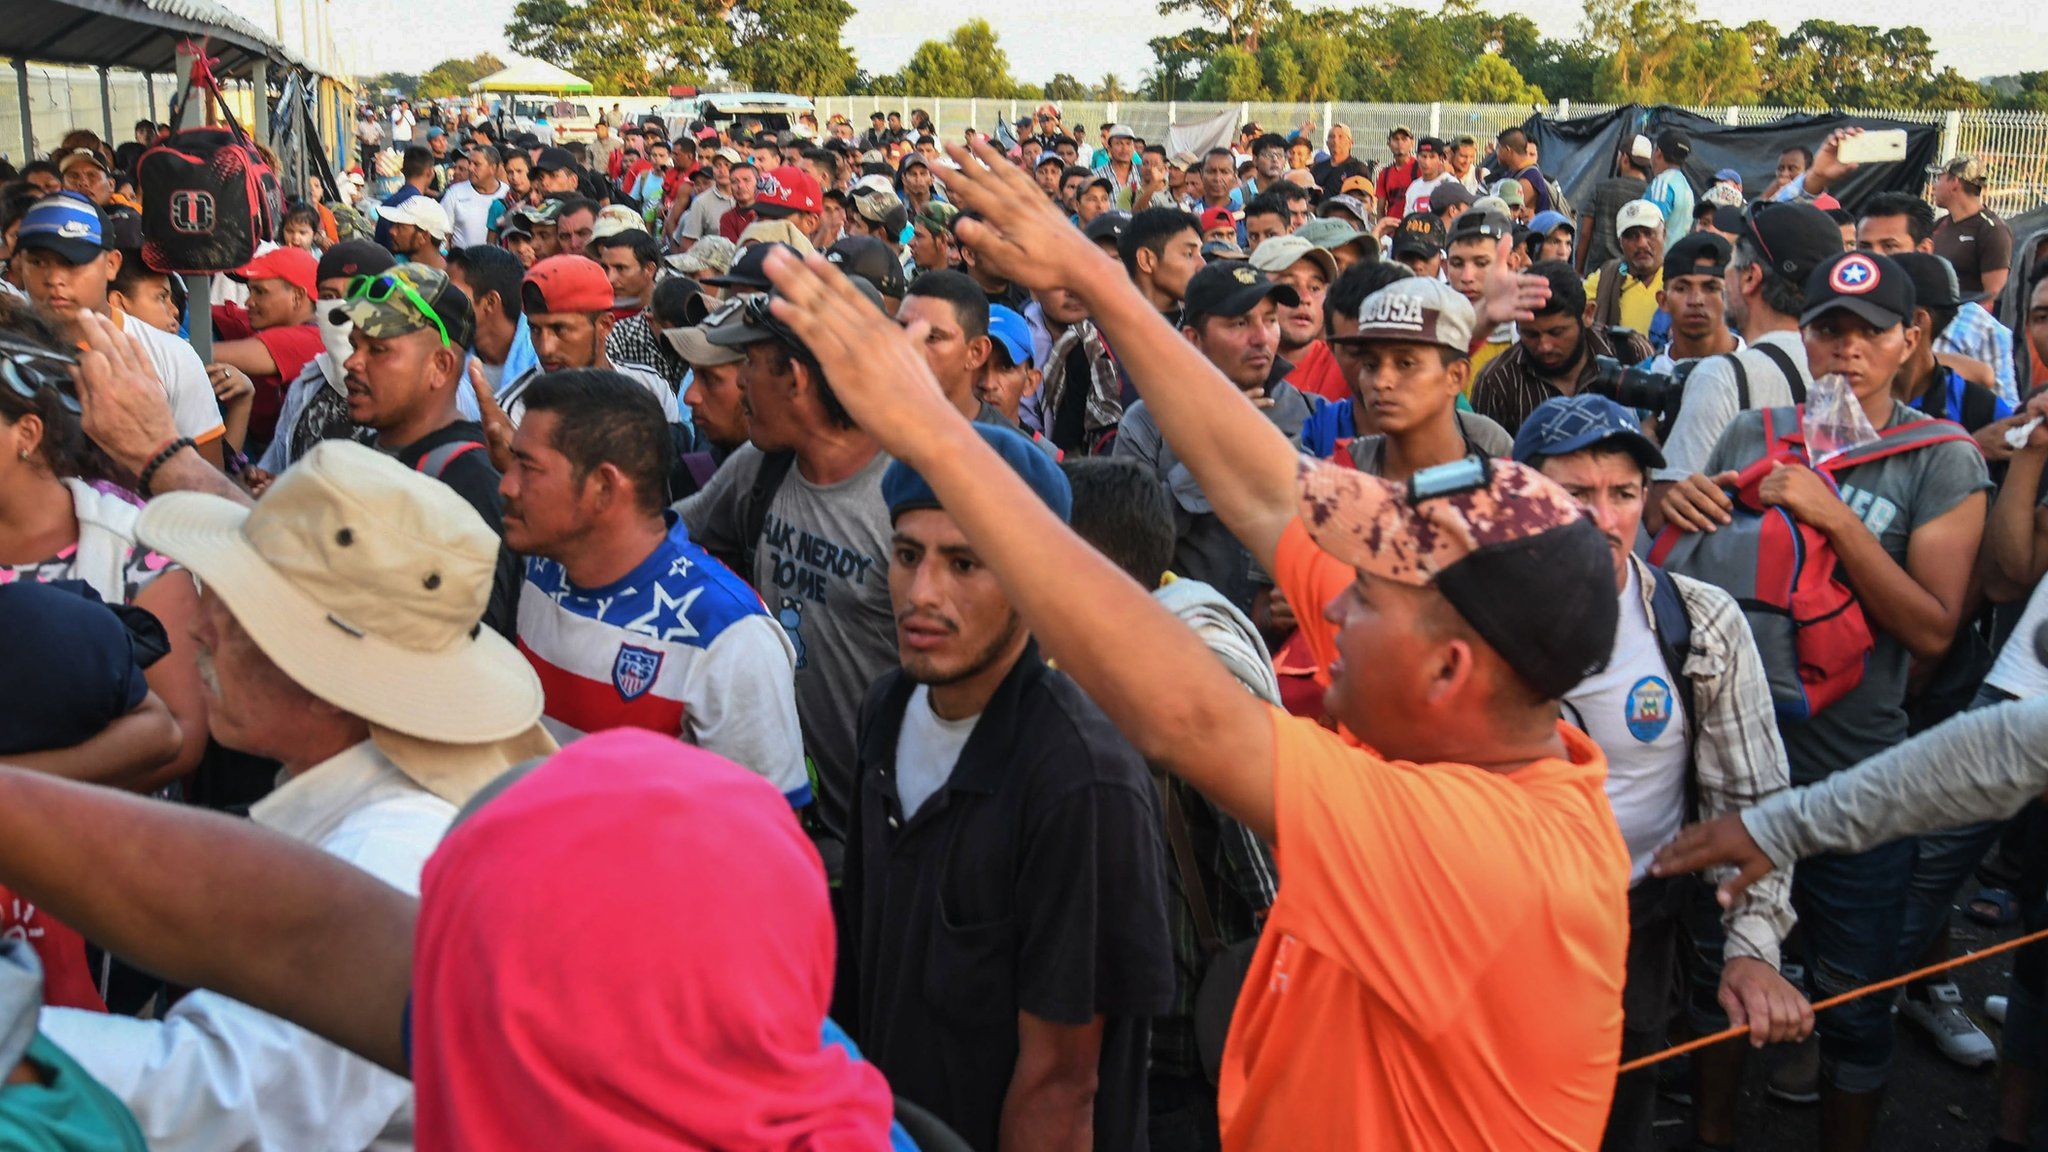 Fake news follows migrant caravan's journey north